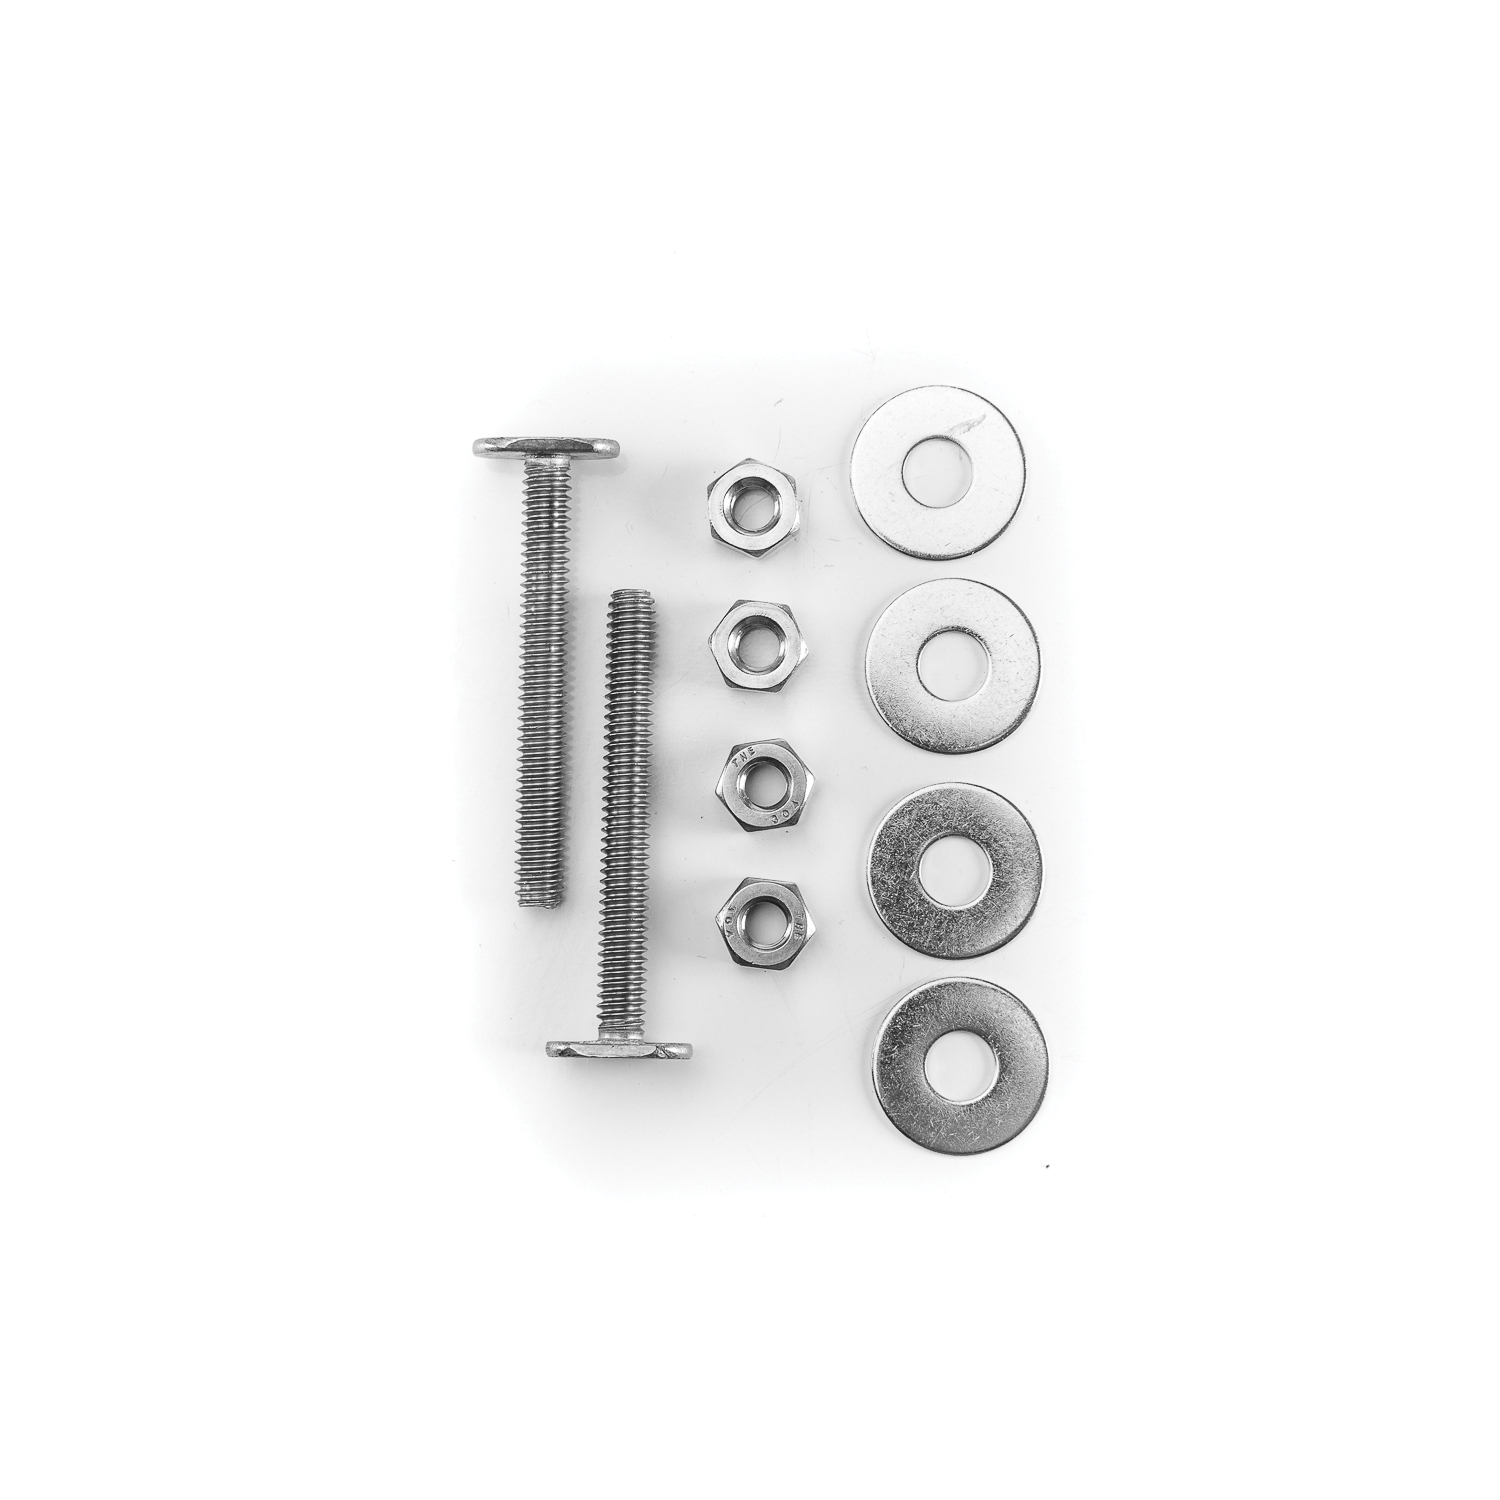 PASCO 28-SS Closet Bolt Set, 1/4 in x 2-1/4 in L Thread, 305 Stainless Steel